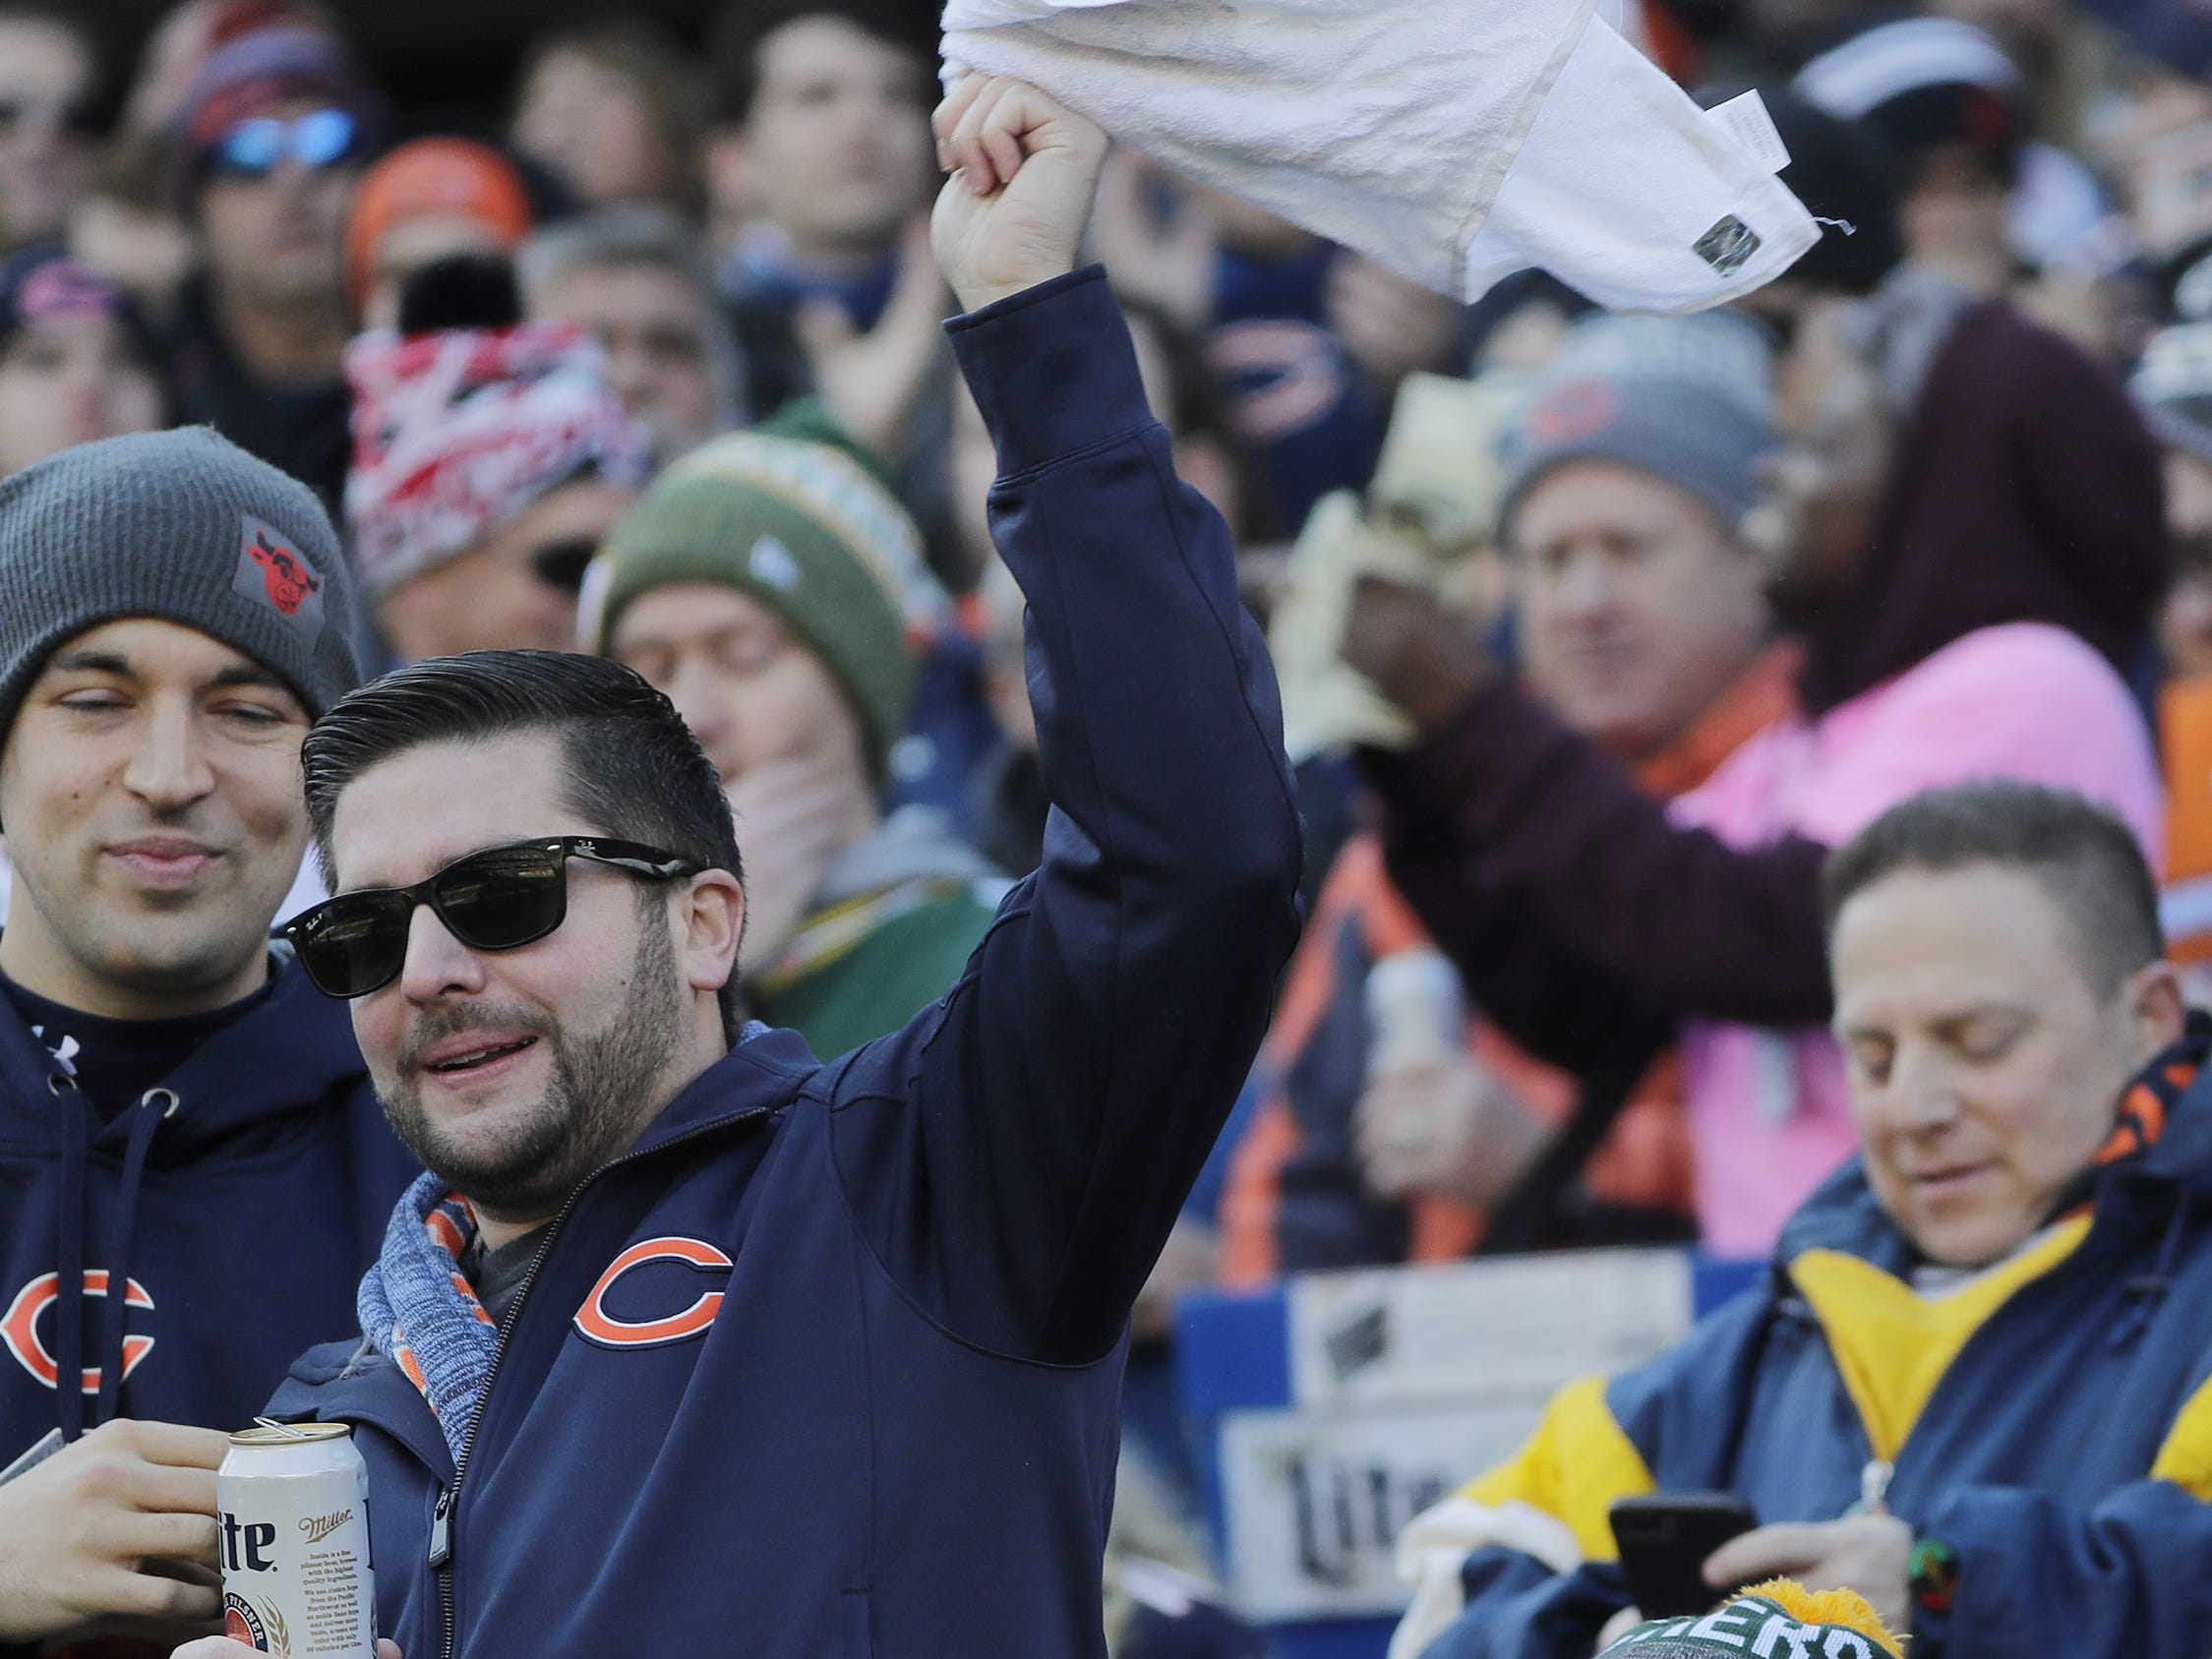 A Green Bay Packers fan watches the Packers lose to the Chicago Bears at Soldier Field on Sunday, December 16, 2018 in Chicago, Illinois. Adam Wesley/USA TODAY NETWORK-Wis